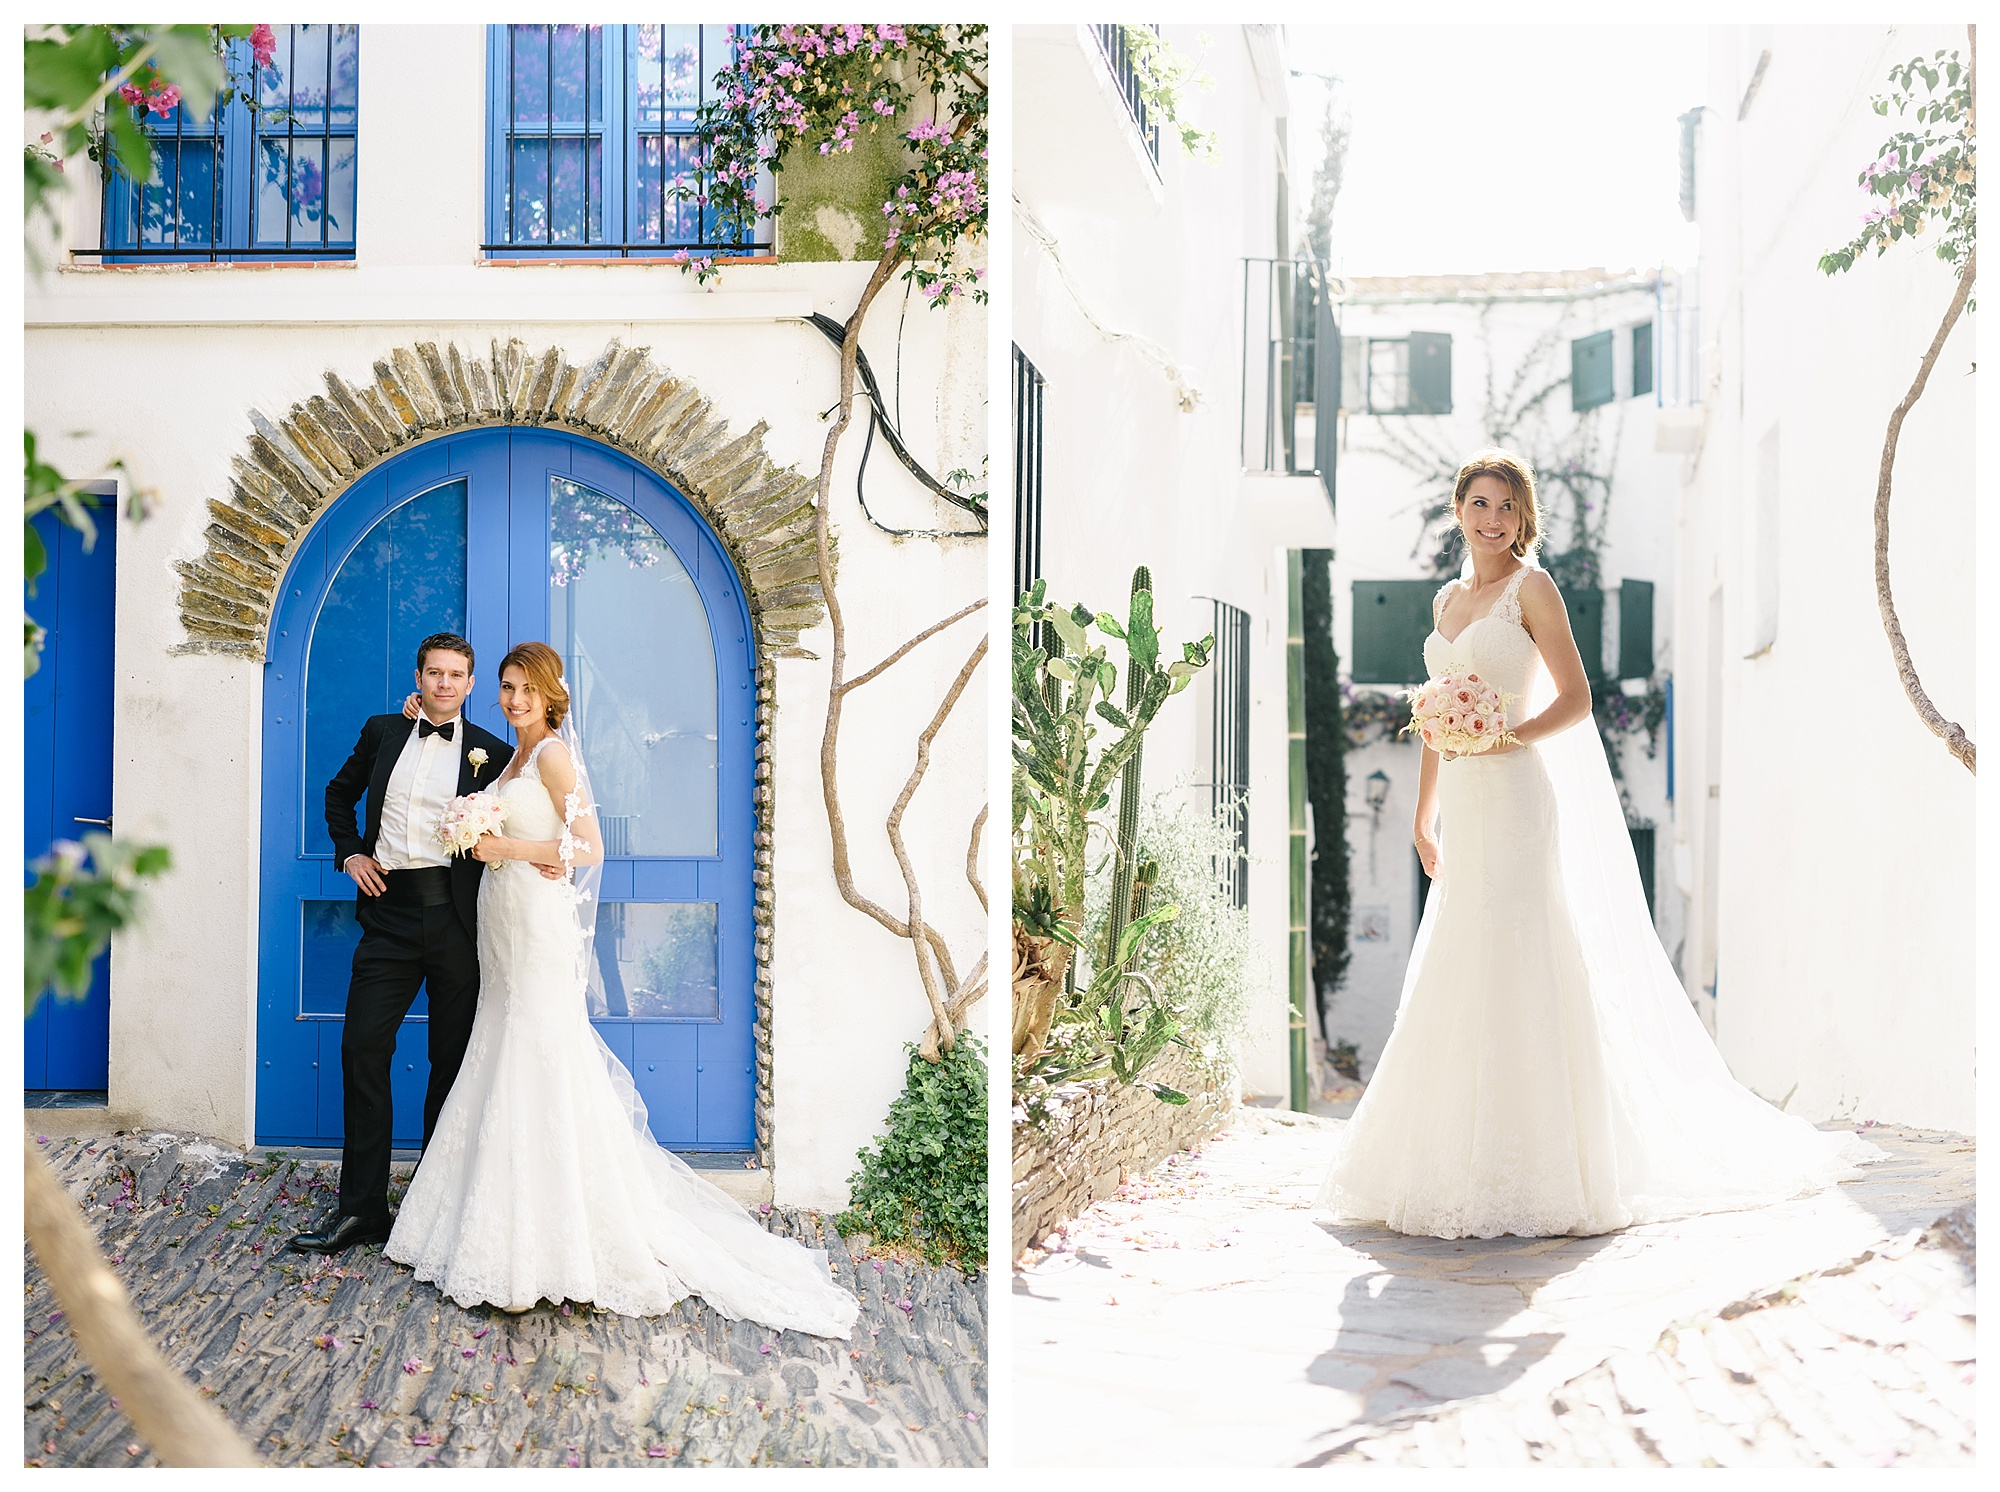 Fotograf Konstanz - Wedding Spain Cadaques Elmar Feuerbacher Photography 37 - Als Destination Wedding Fotograf in Cadaqués, Spanien  - 37 -